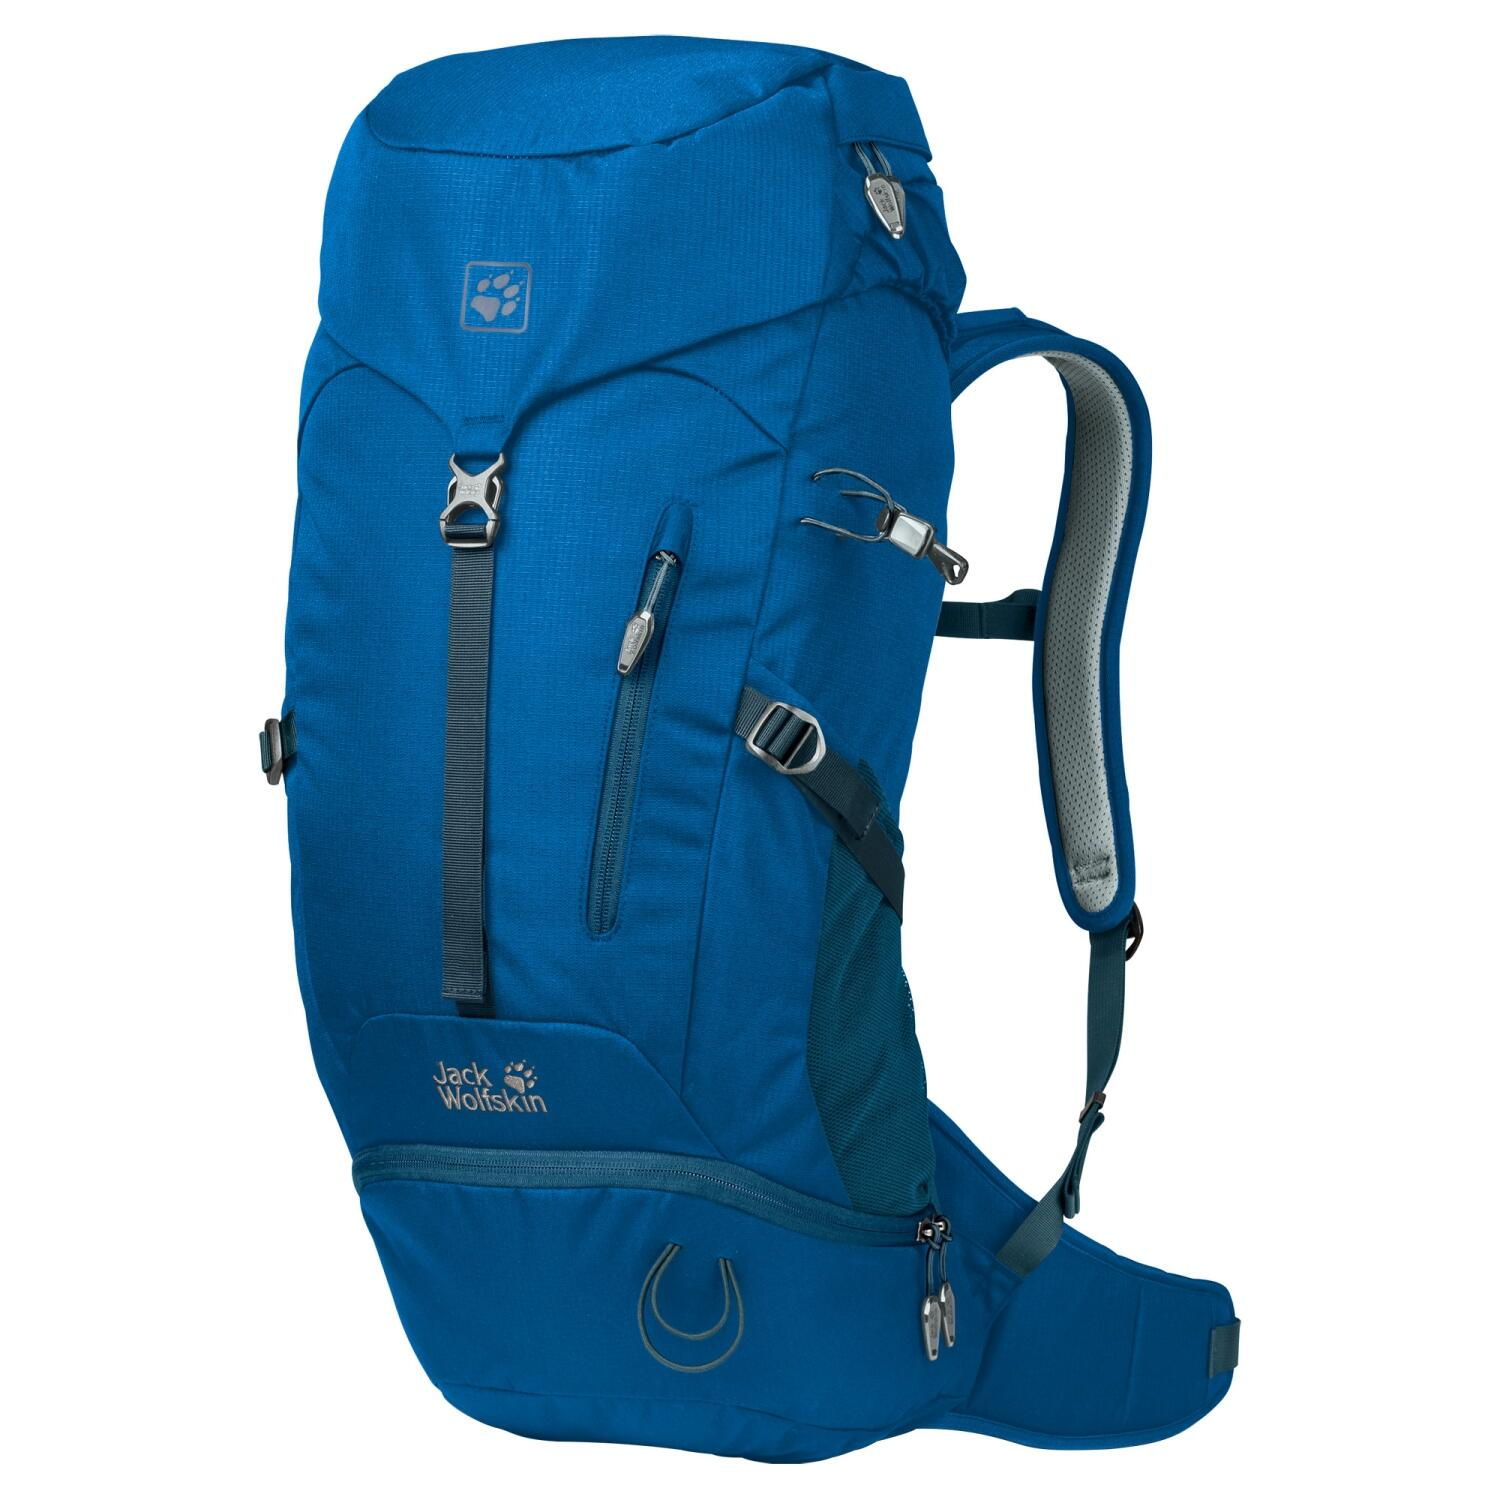 jack-wolfskin-astro-30-pack-rucksack-farbe-1062-electric-blue-